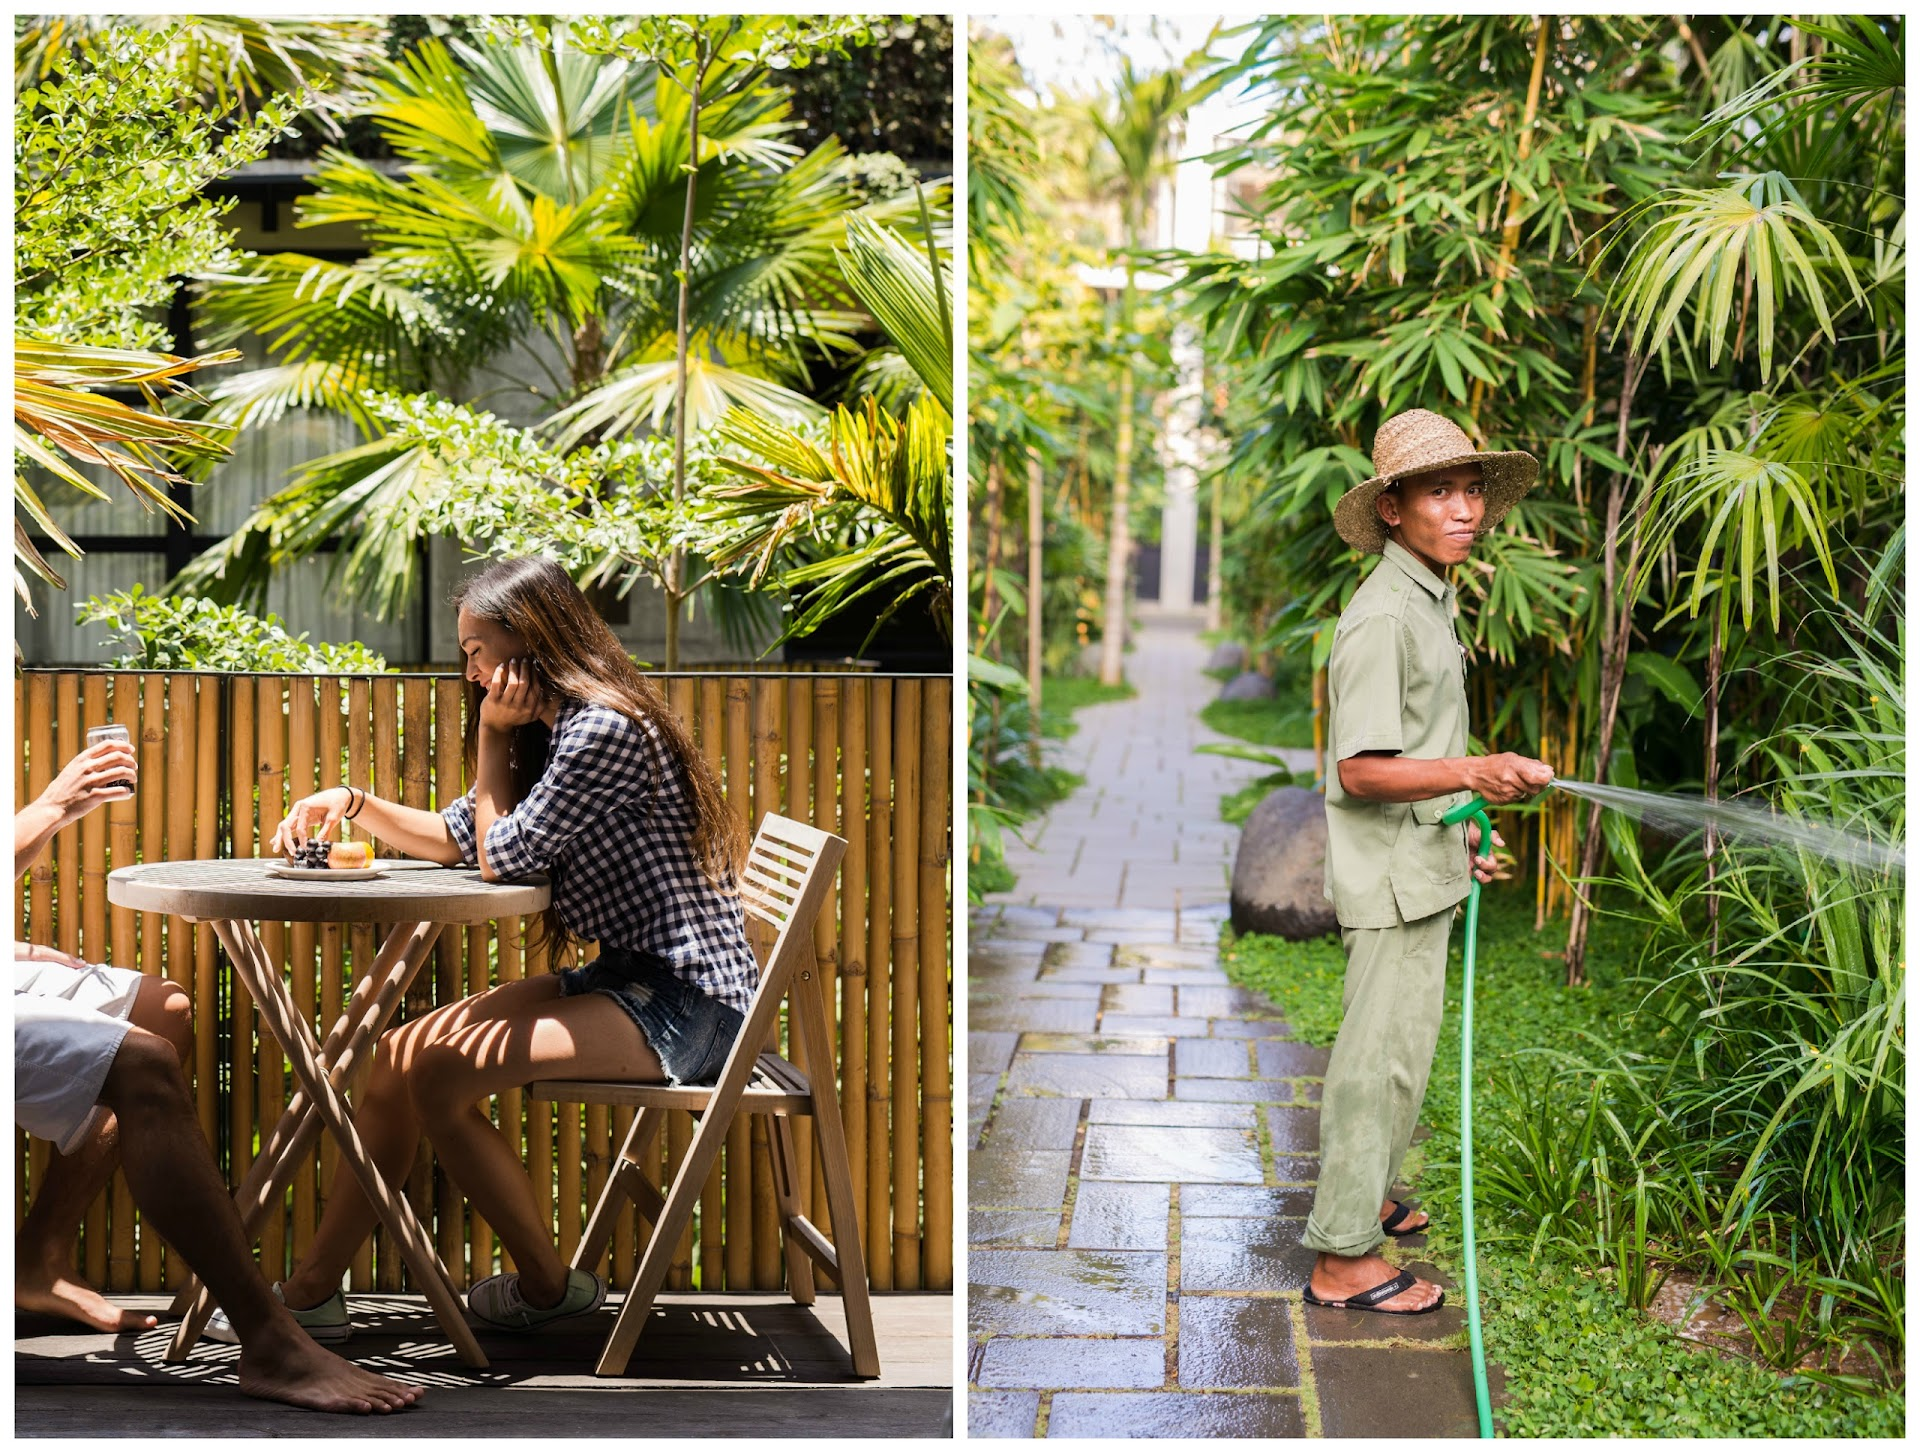 bali jungle, best hotels in bali, ubud, indonesia travel, bisma eight hotel review, tropical paradise, luxury hotel bali, travel blogger, san francisco based, bay area, asian, world traveler